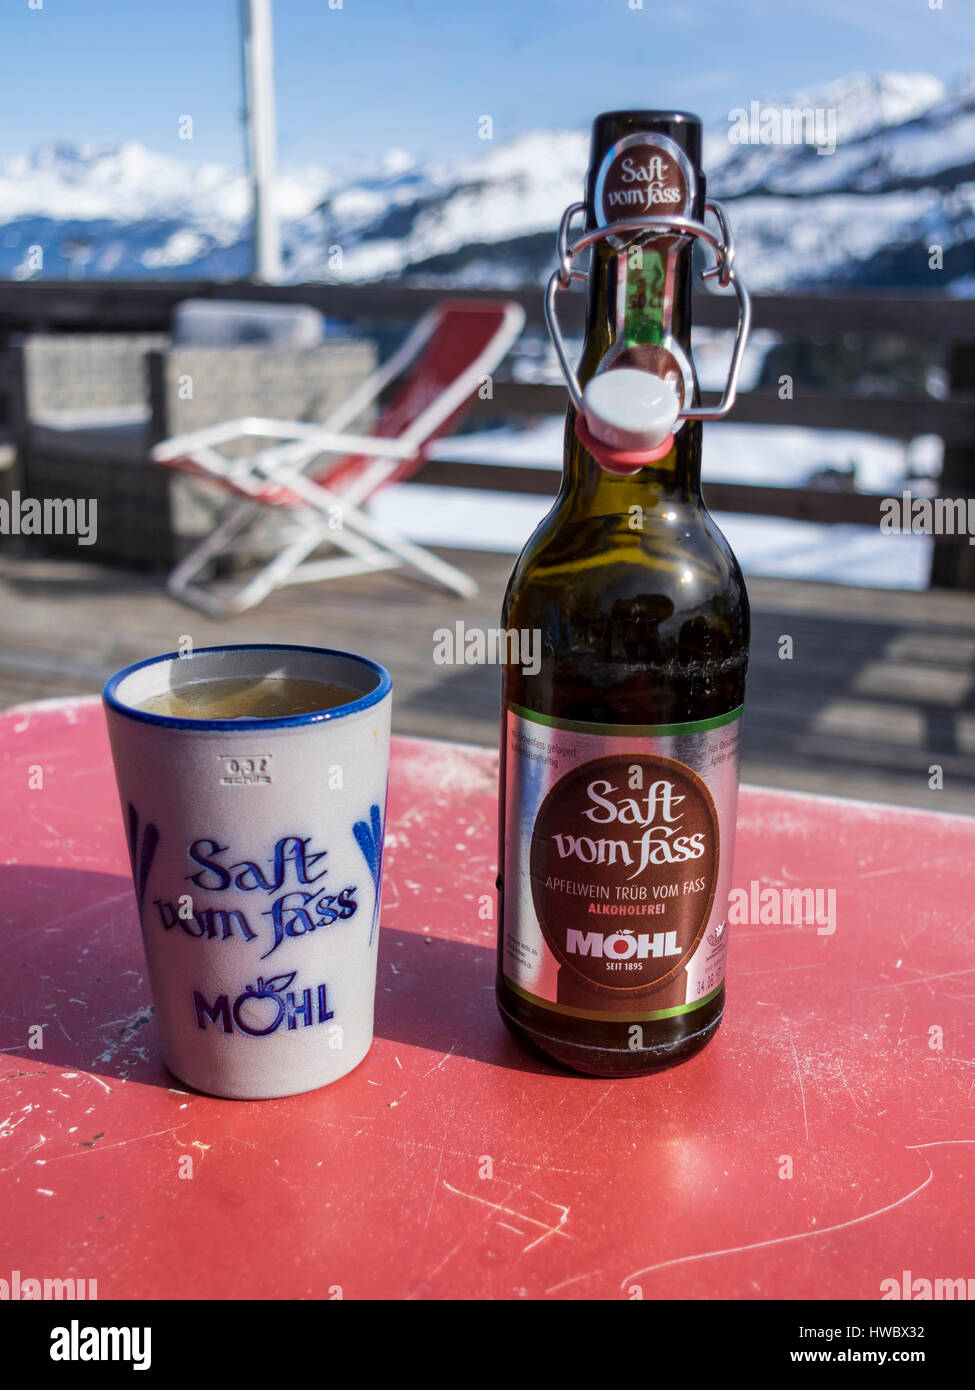 Bottle of non-alcoholic Möhl Apfelwein 'Saft vom Fass', a traditional Swiss cider, with a ceramic beaker. - Stock Image